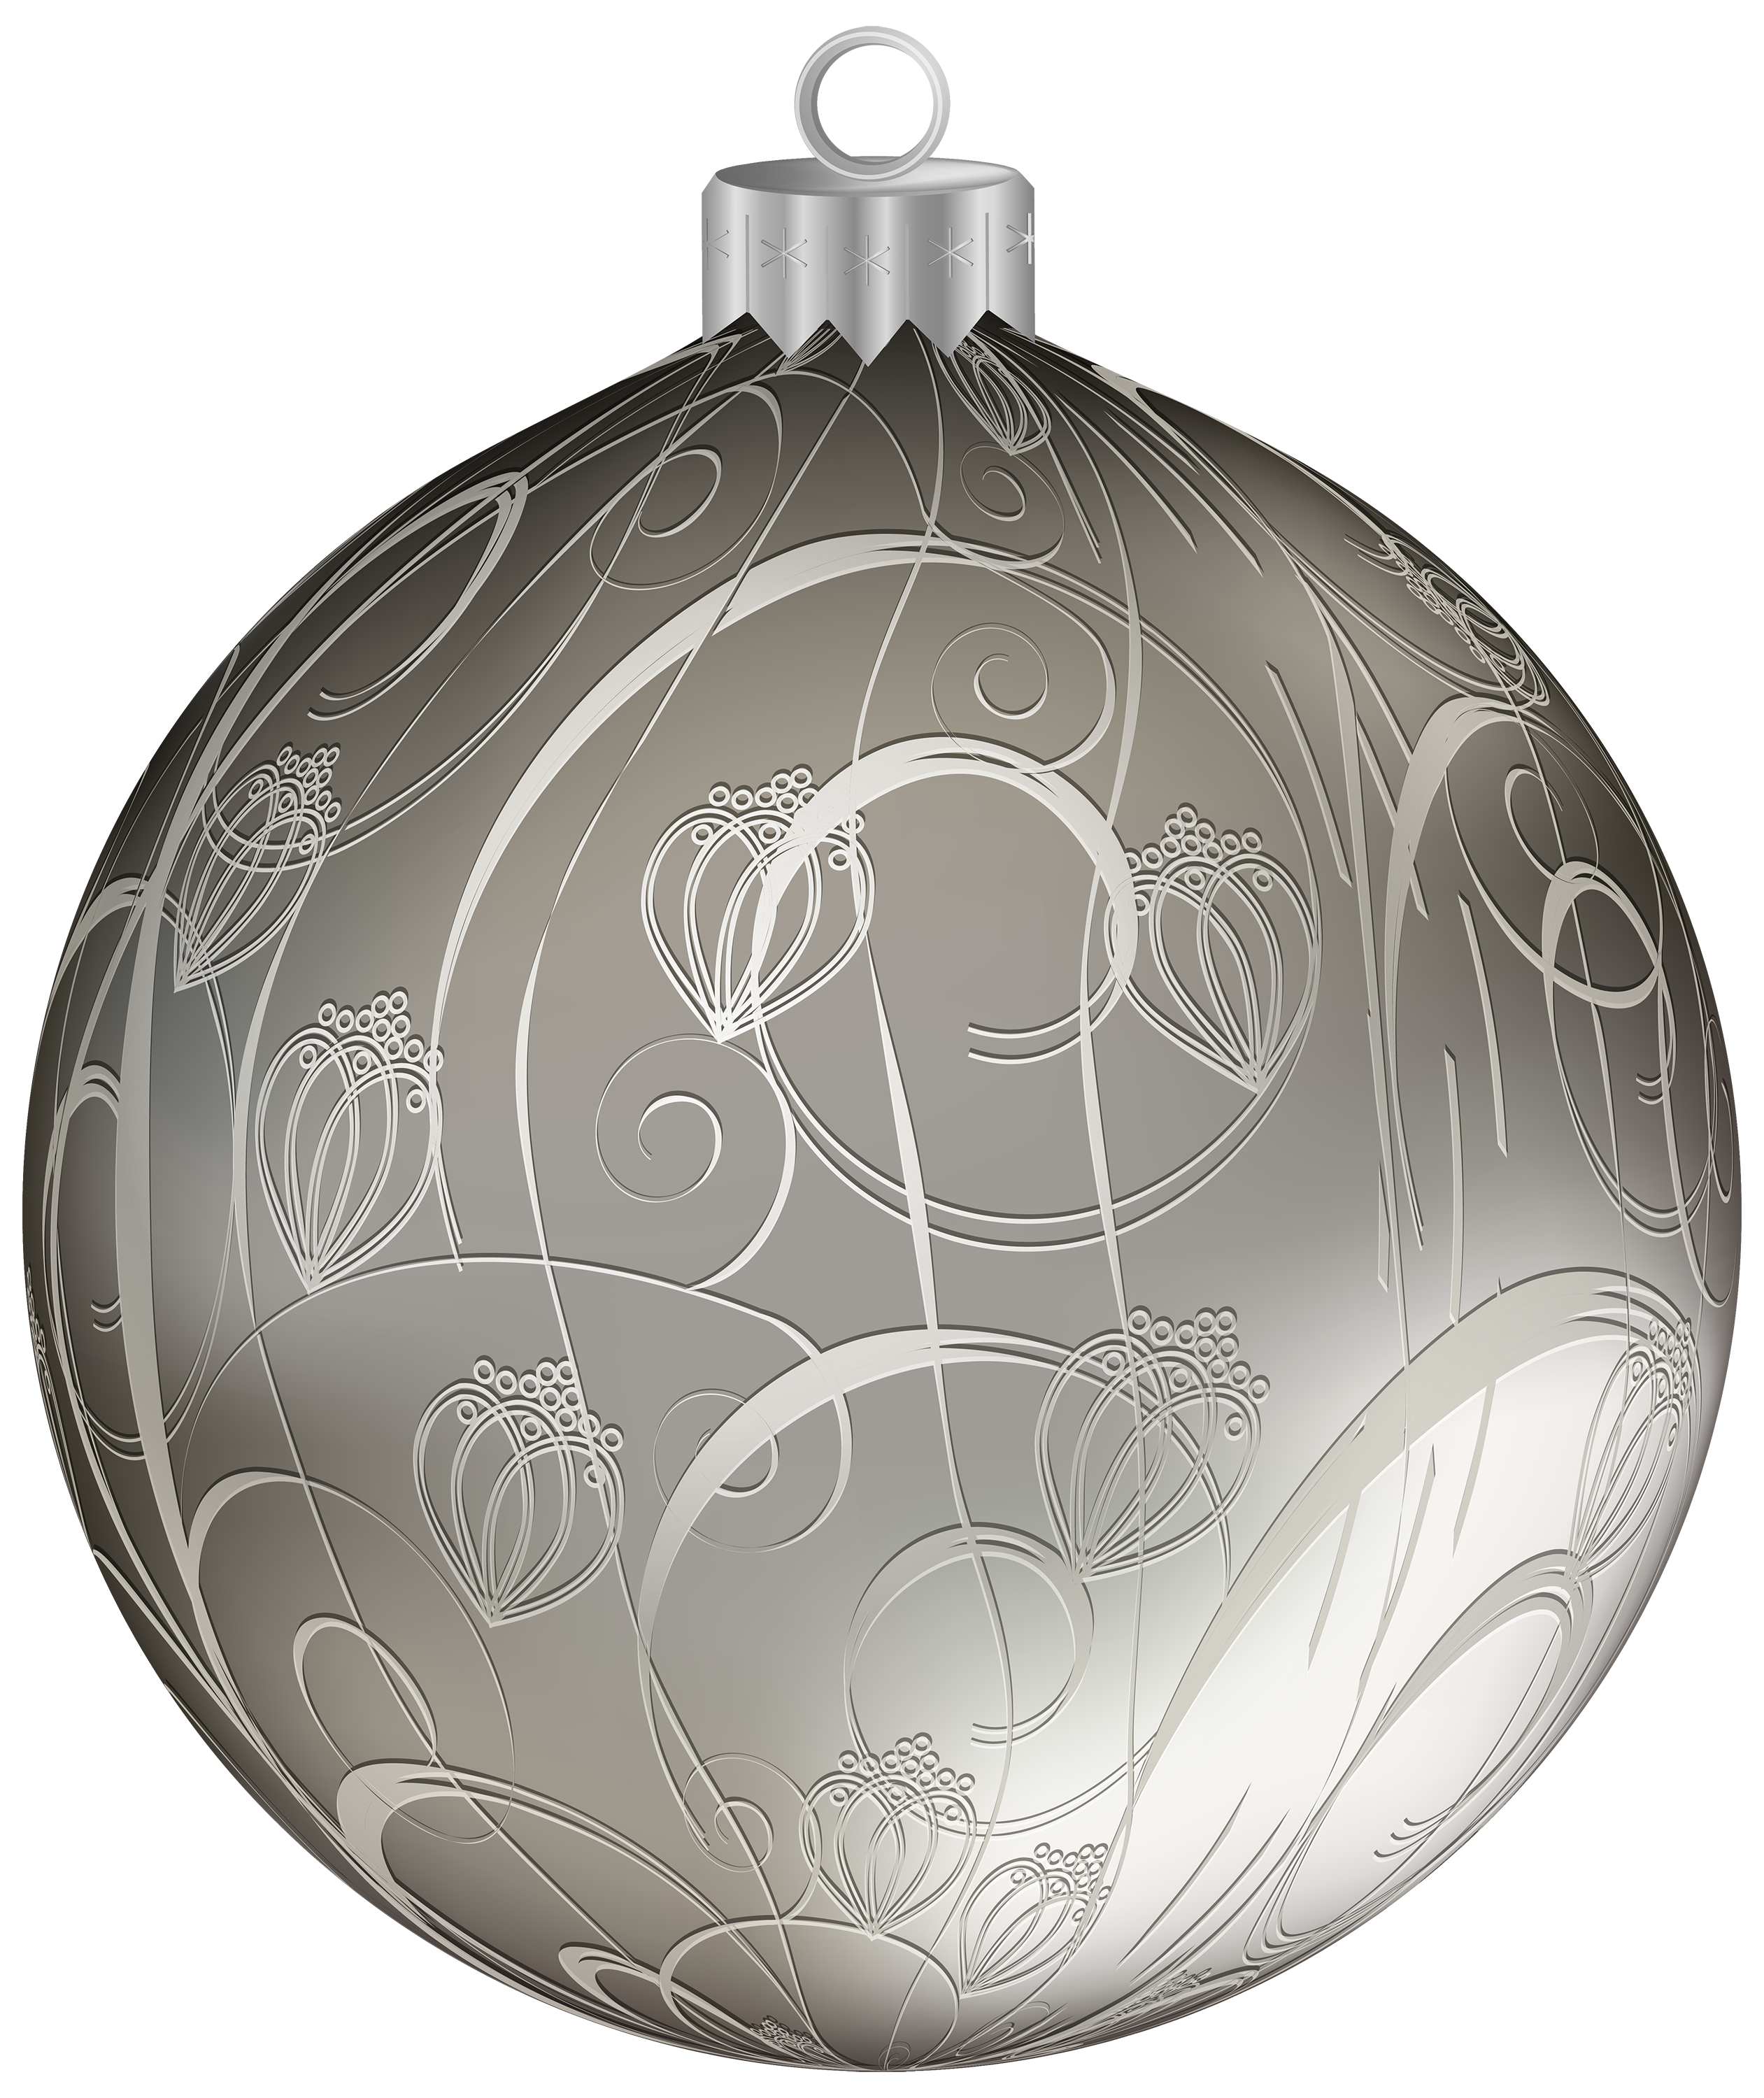 Silver Christmas Ball with Ornaments PNG Clipart Image.